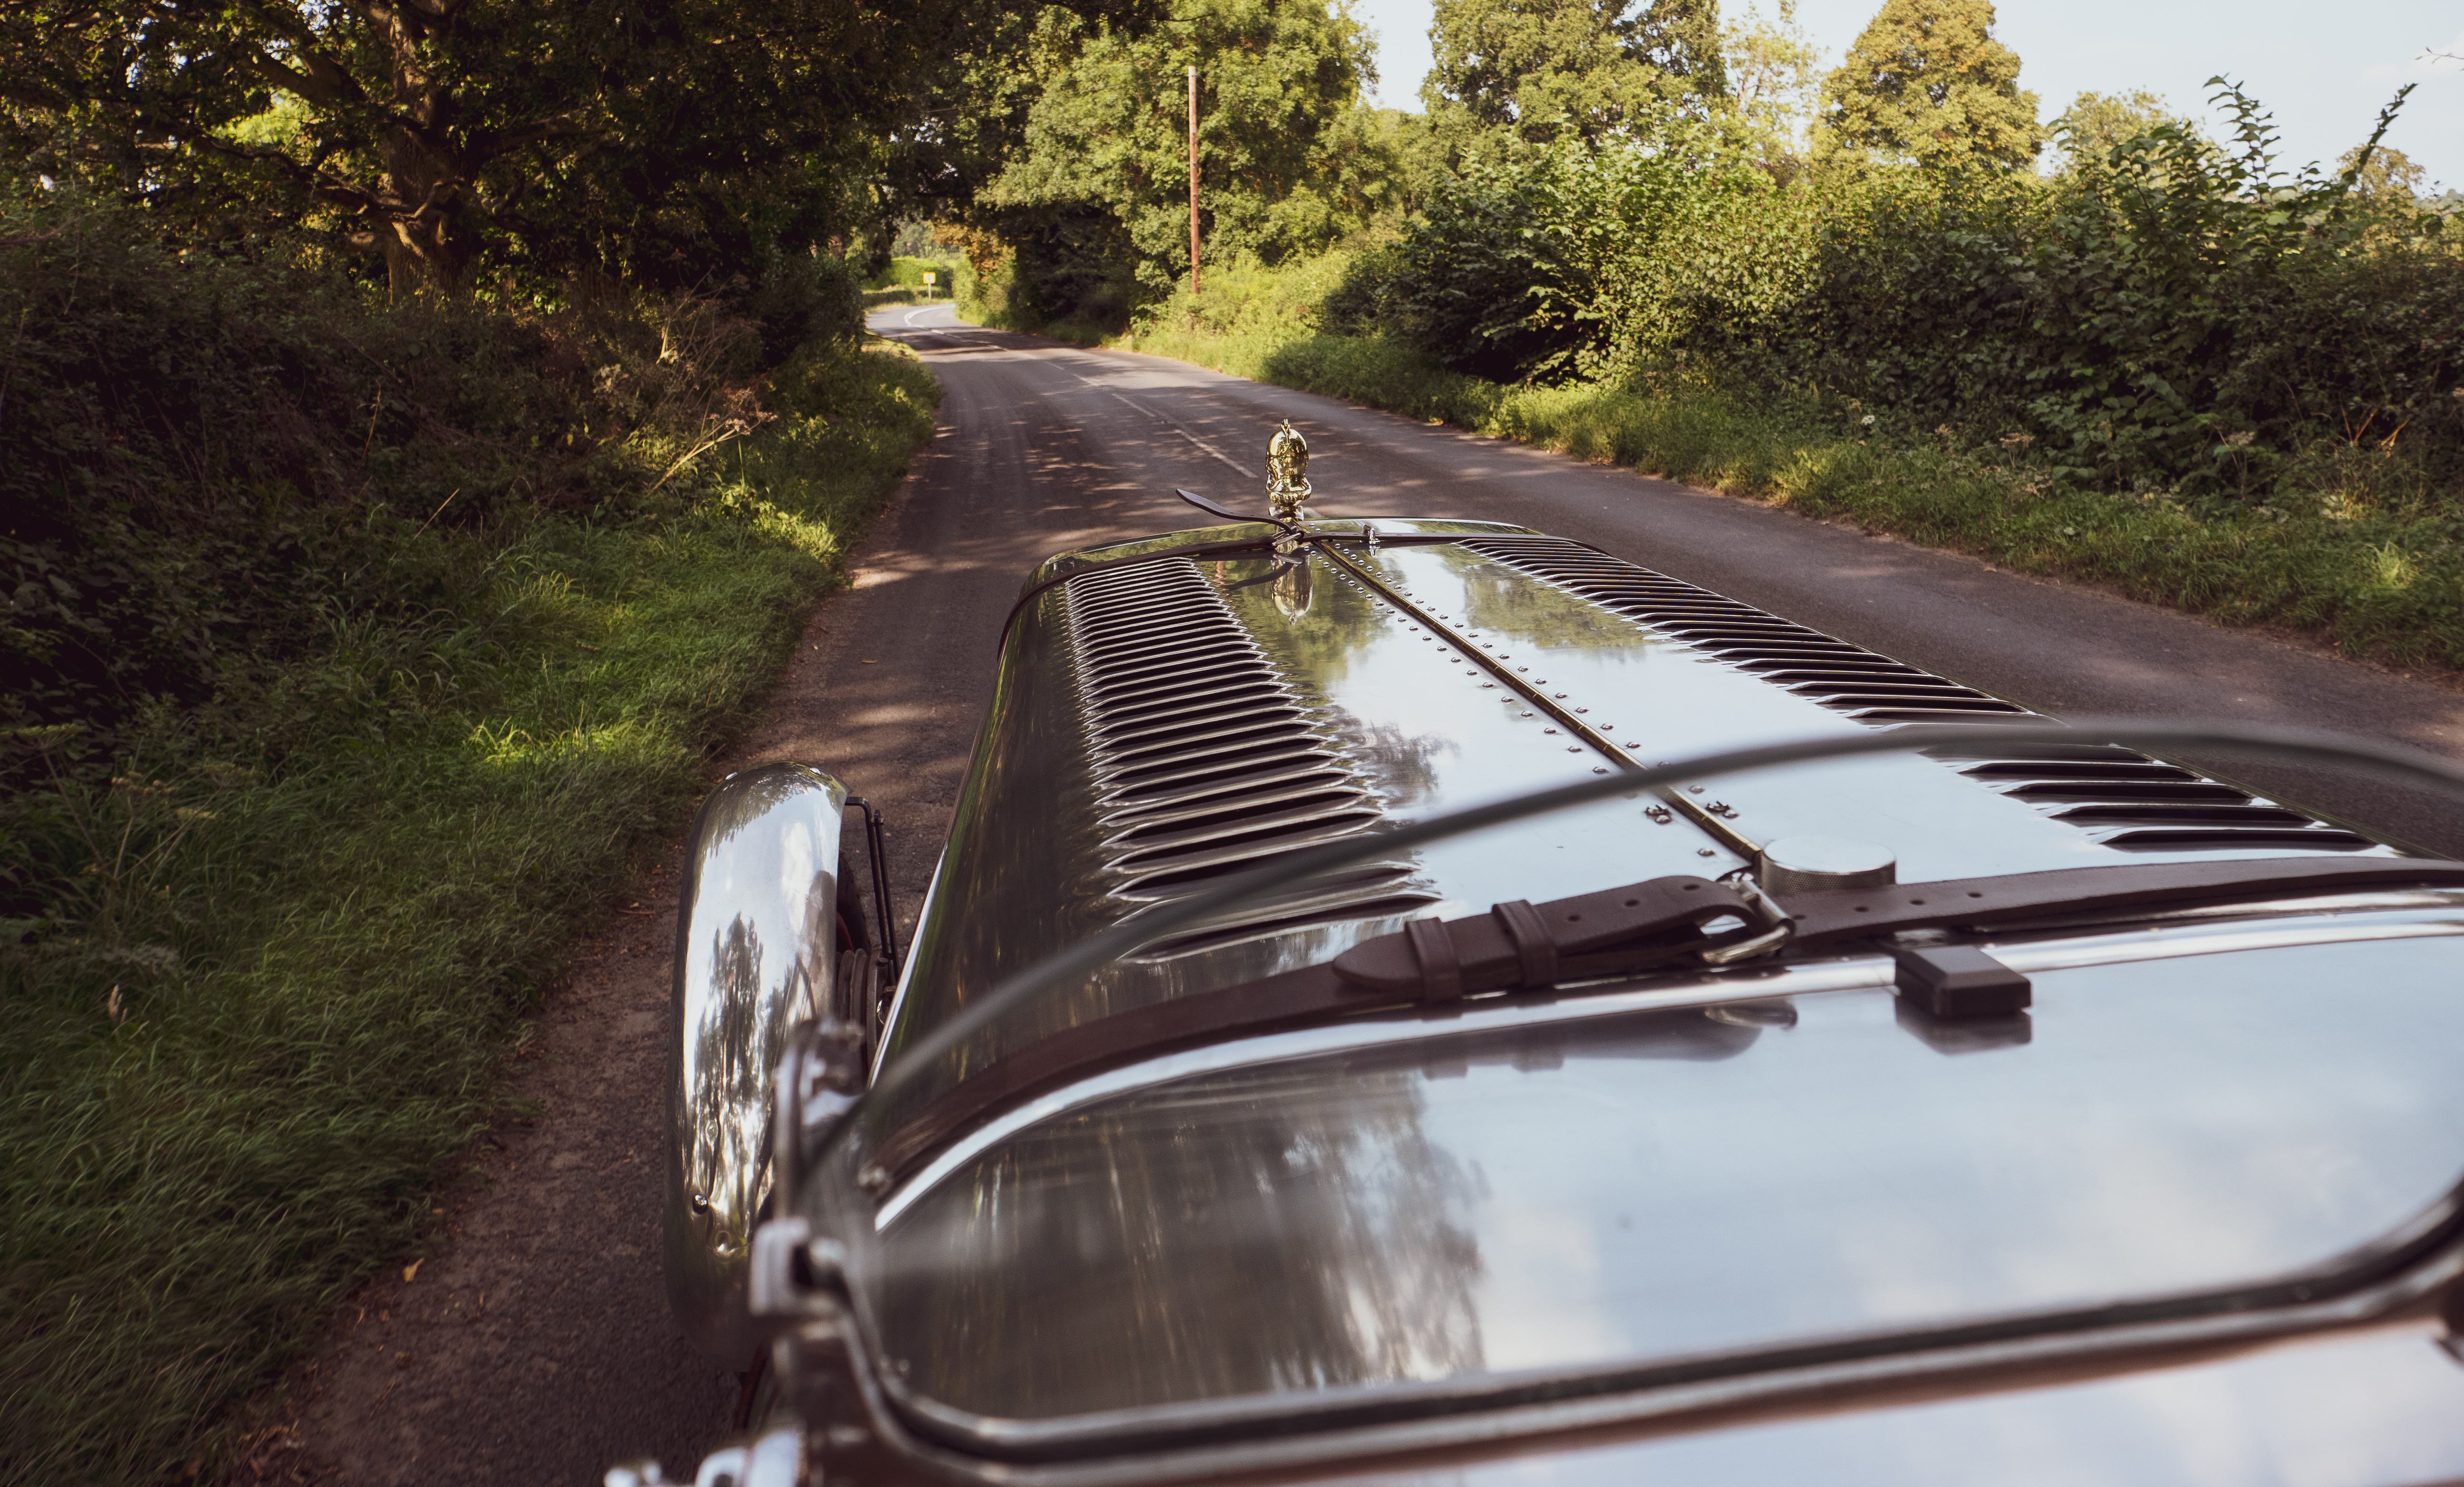 Driving the Minerva Liberty Special